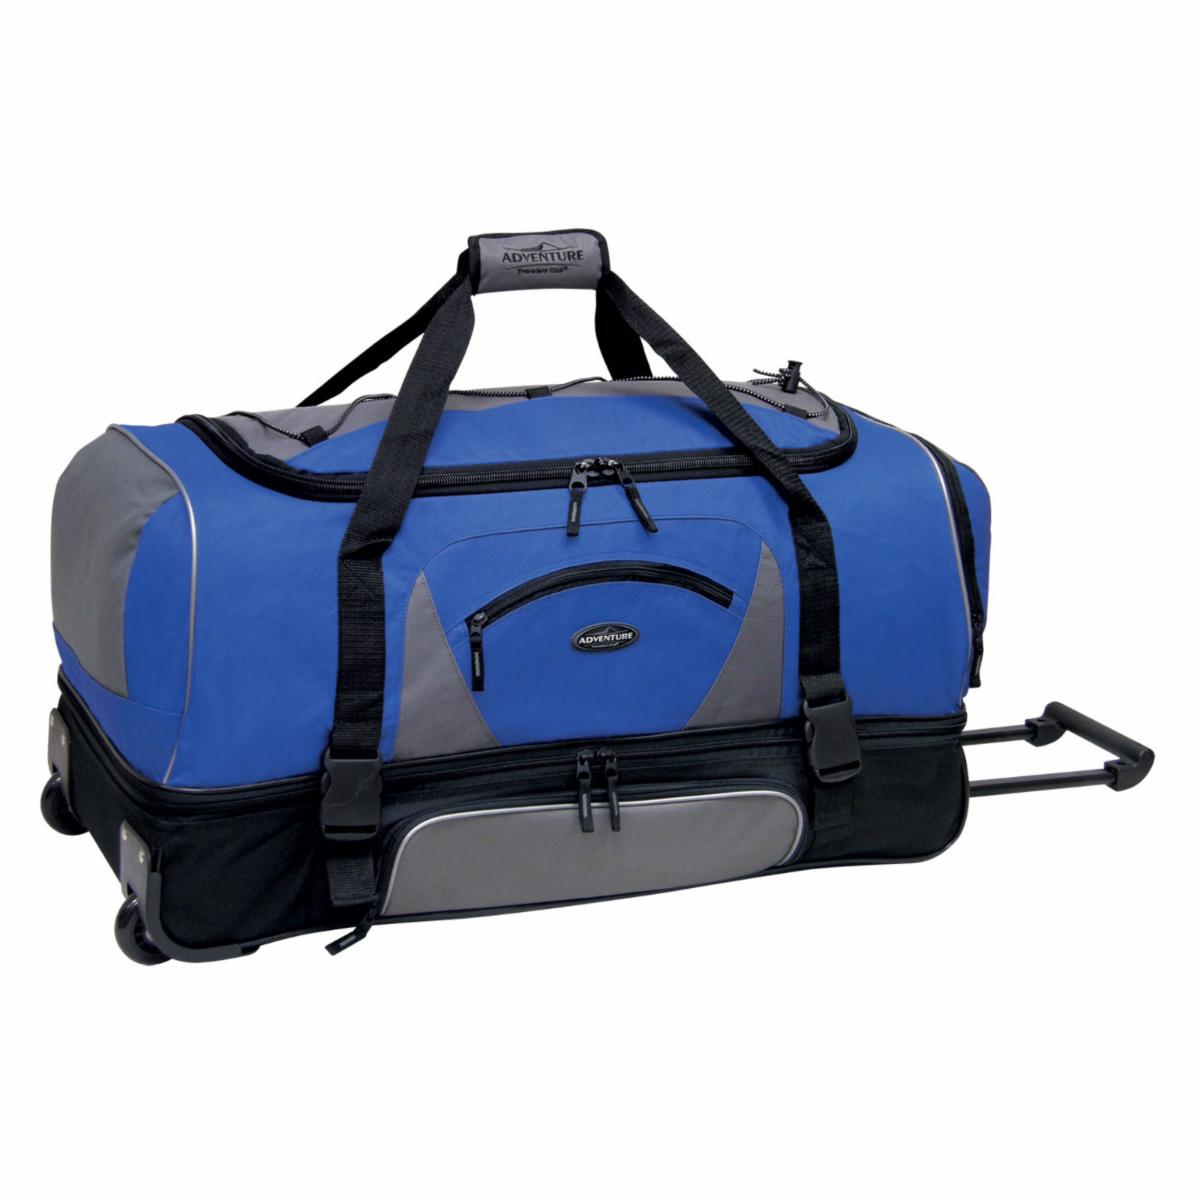 Travelers Club 30 in. 2 Section Drop Bottom Rolling Duffel Bag   Navy/Black   Sports & Duffel Bags